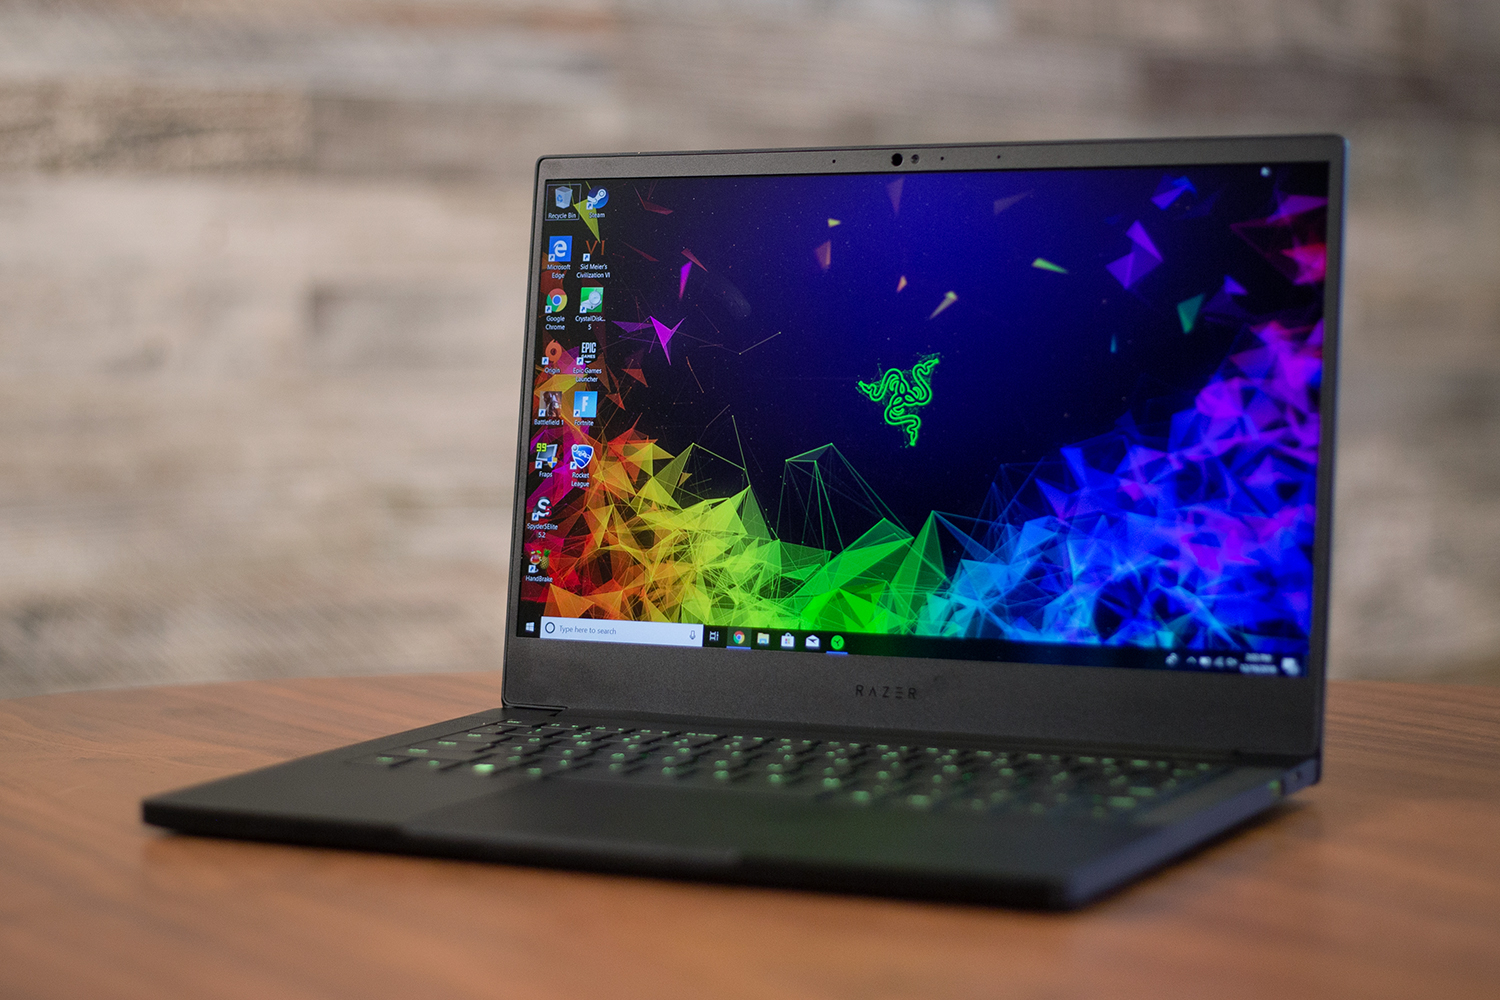 Best Laptop for Photography And Video Editing